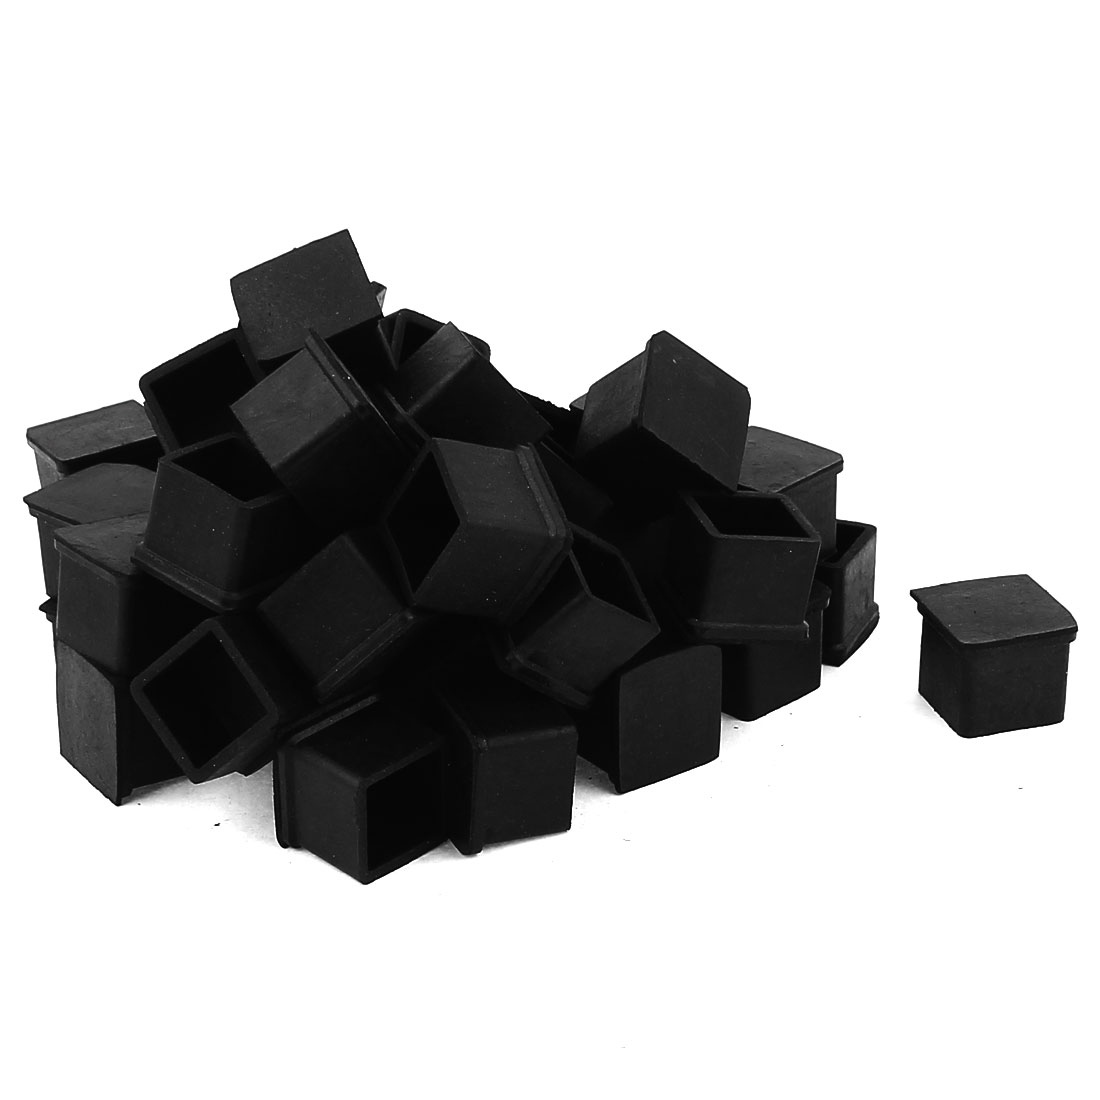 50 Pcs Square Rubber Furniture Table Foot Leg Cover Pad Floor Protector 20mm x 20mm